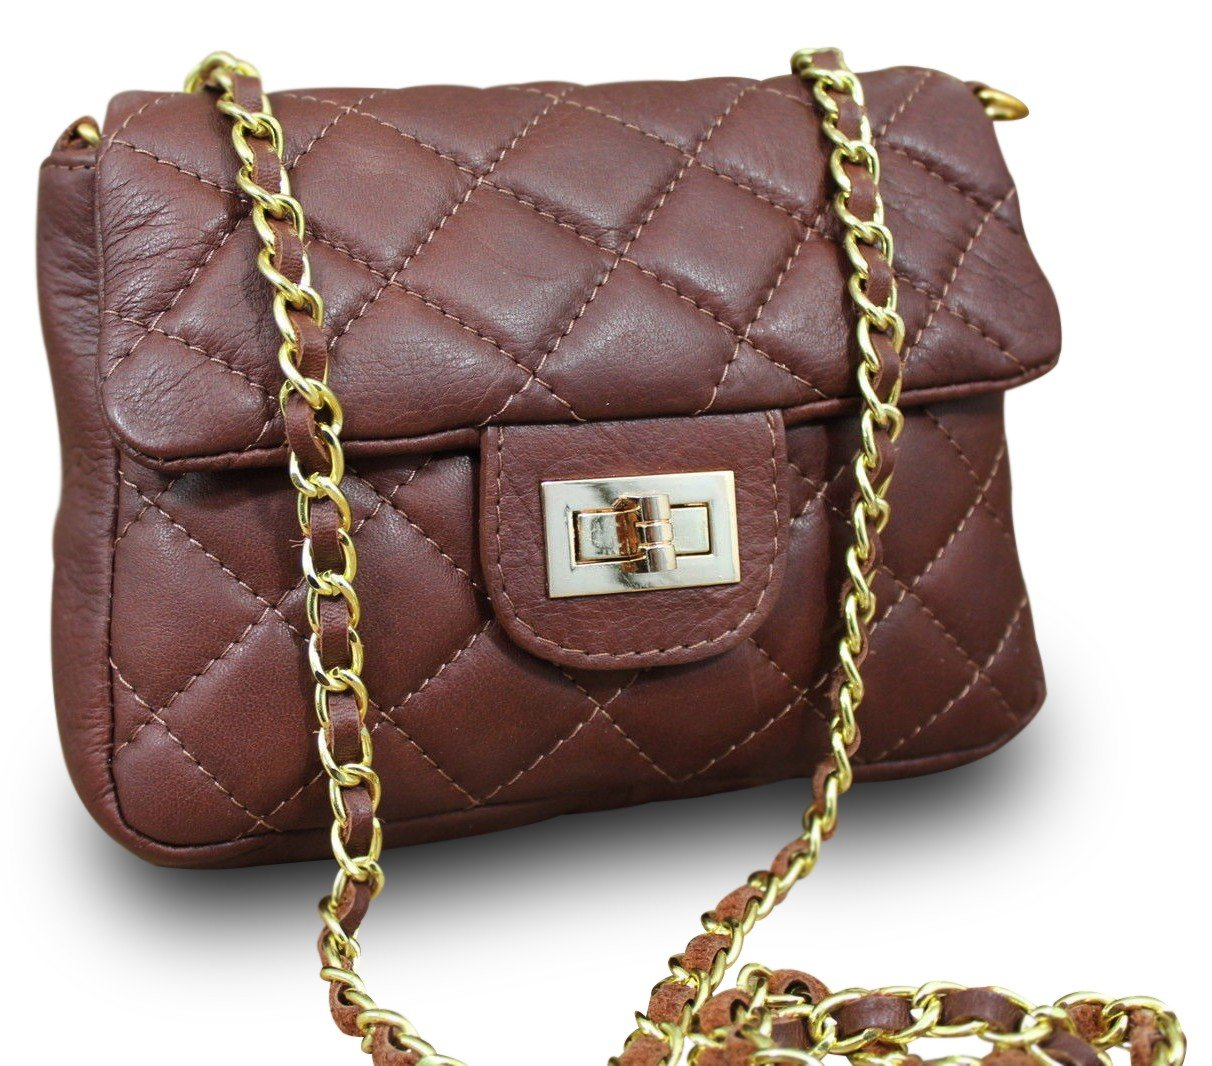 Made In Italy Luxury Party Bag Clutch Nappa Leather Chain Quilted Women's Shoulder Bag Brown